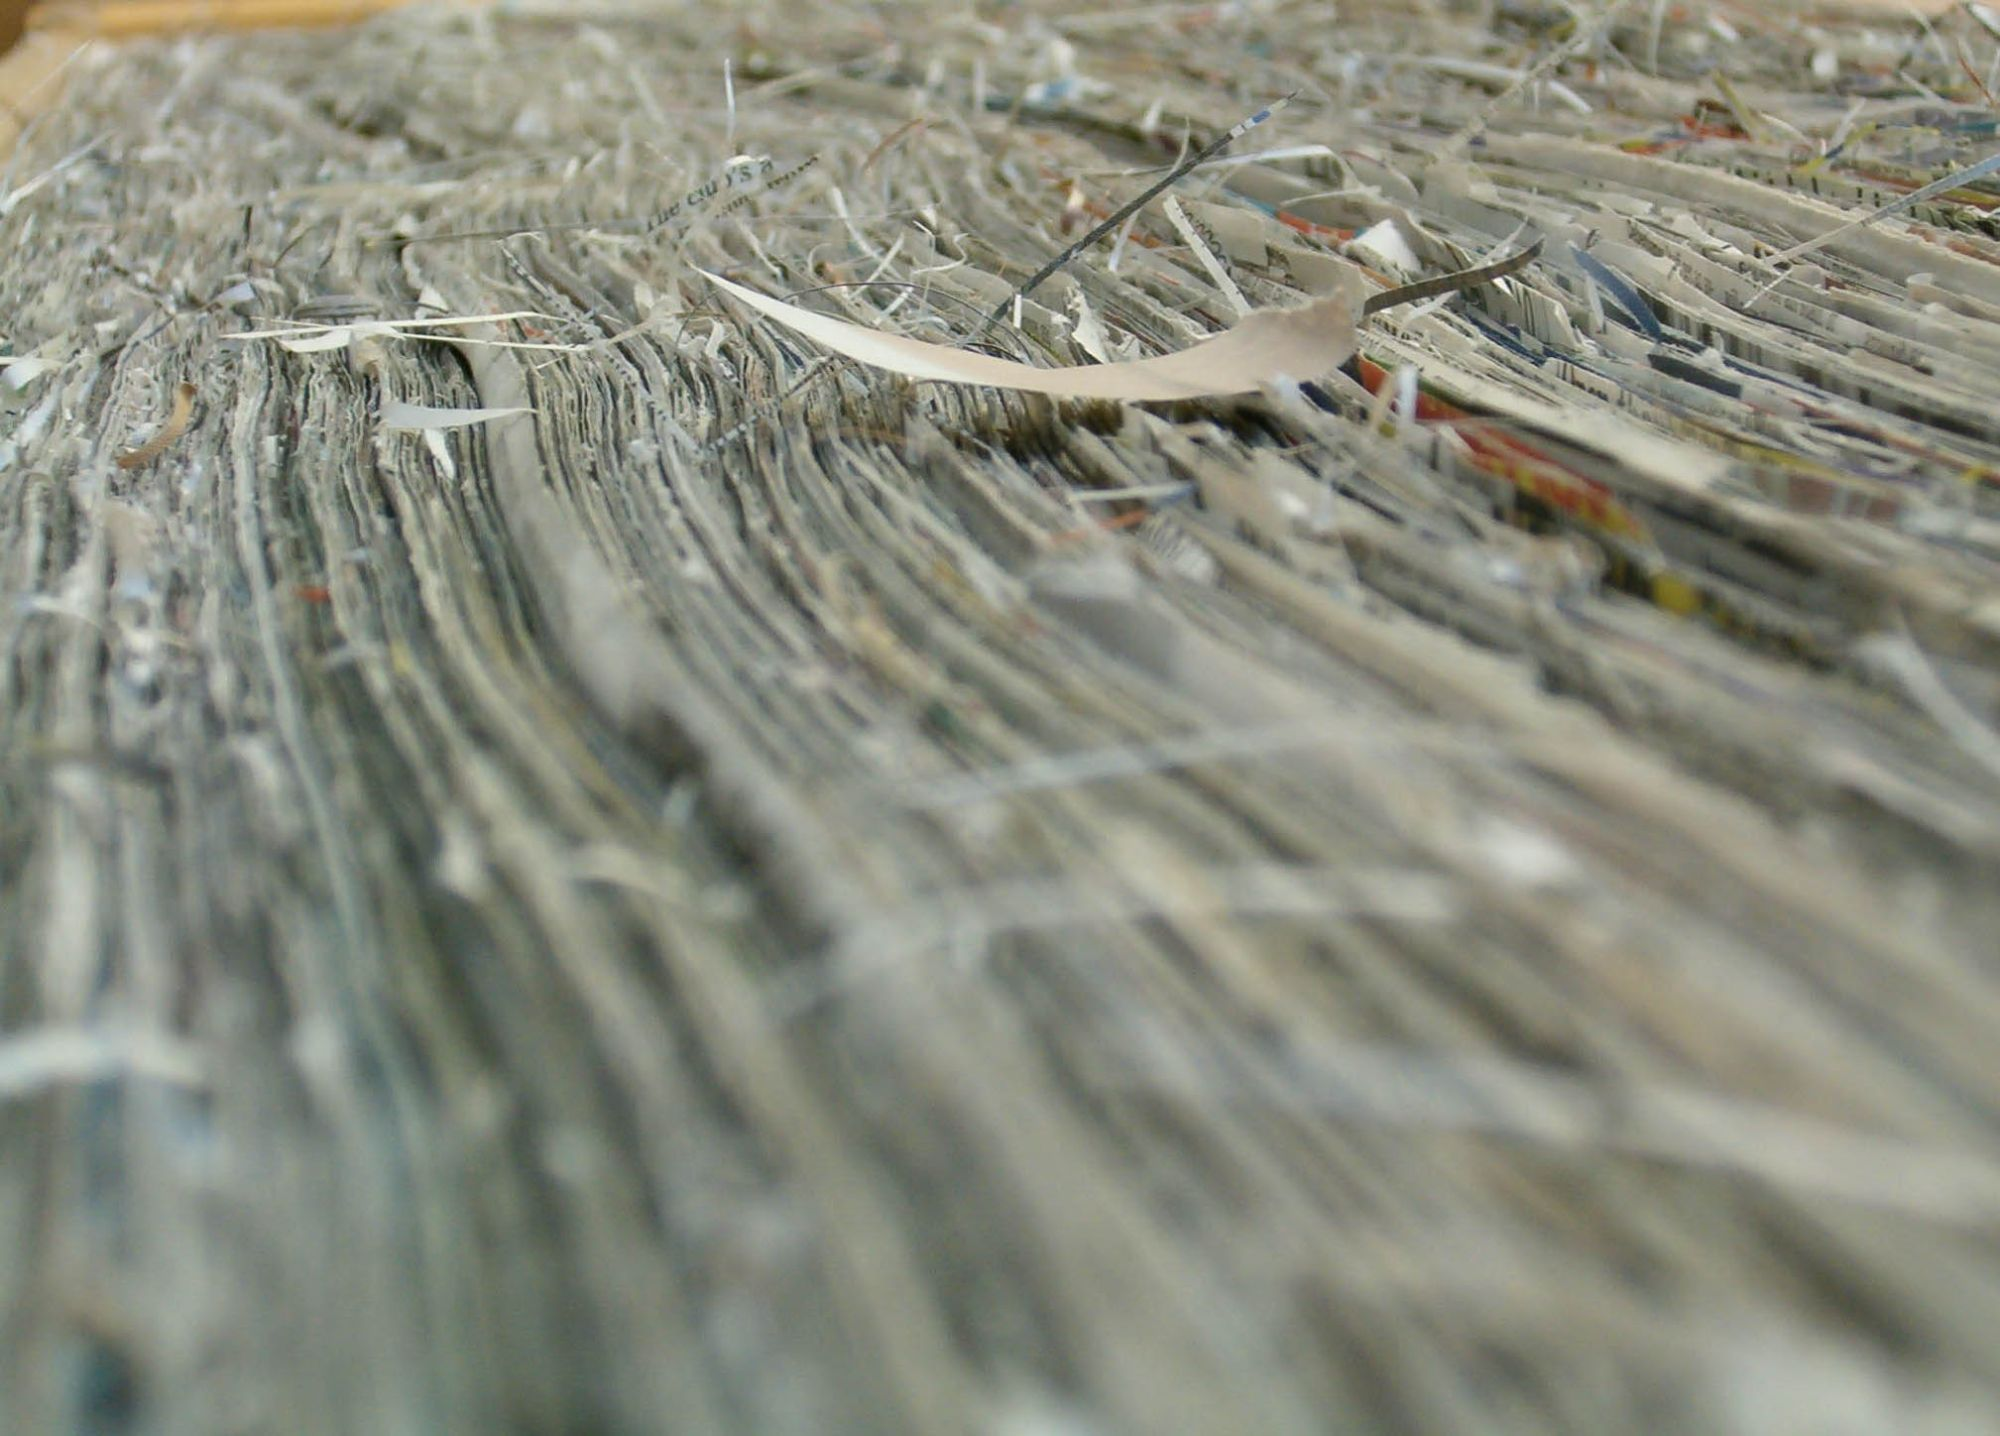 detail of artwork by Tracey Falcon title, Threads. Made of newspaper